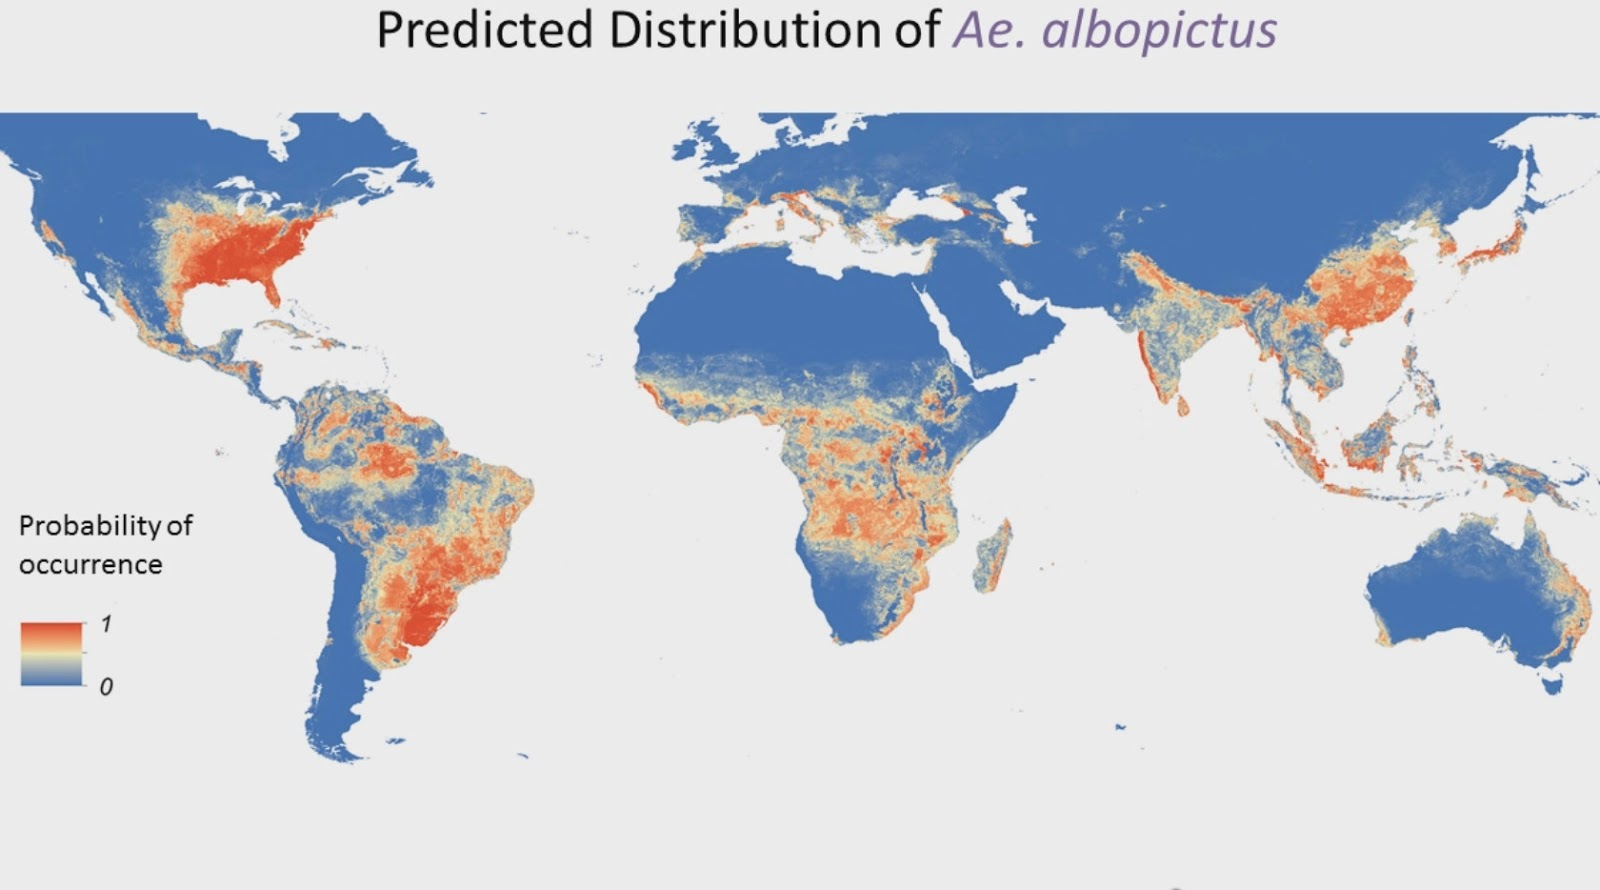 Predicted distribution of Ae. albopictus